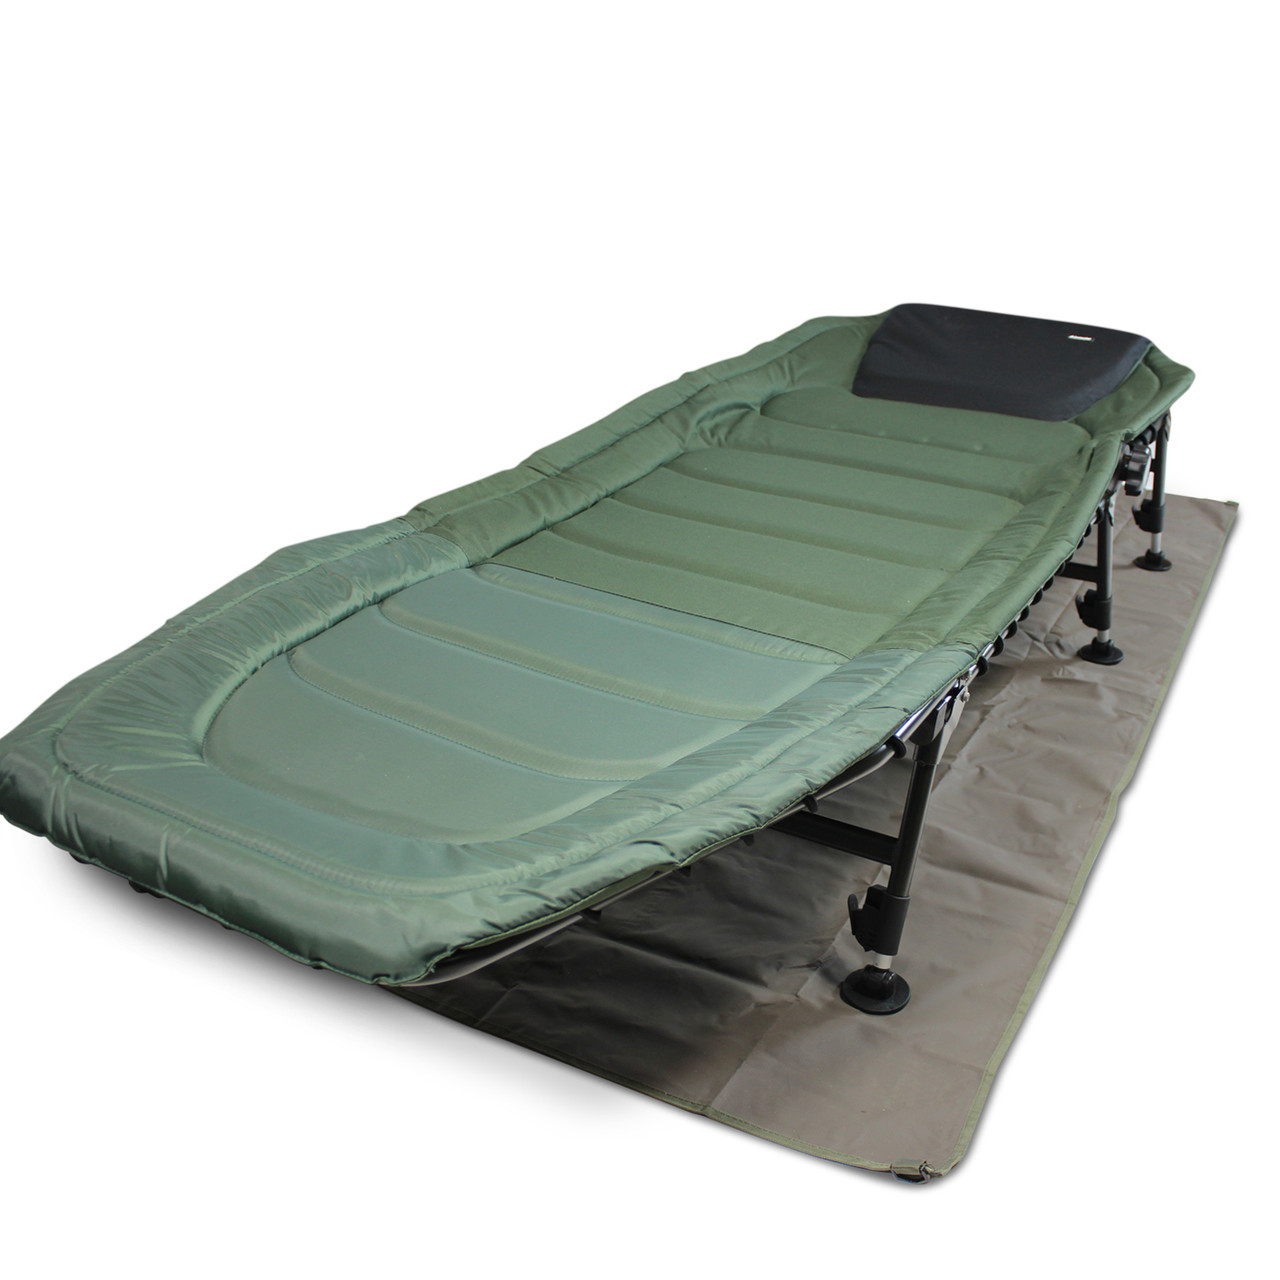 Abode Carp Fishing Camping Bedchair Bed Chair Bivvy